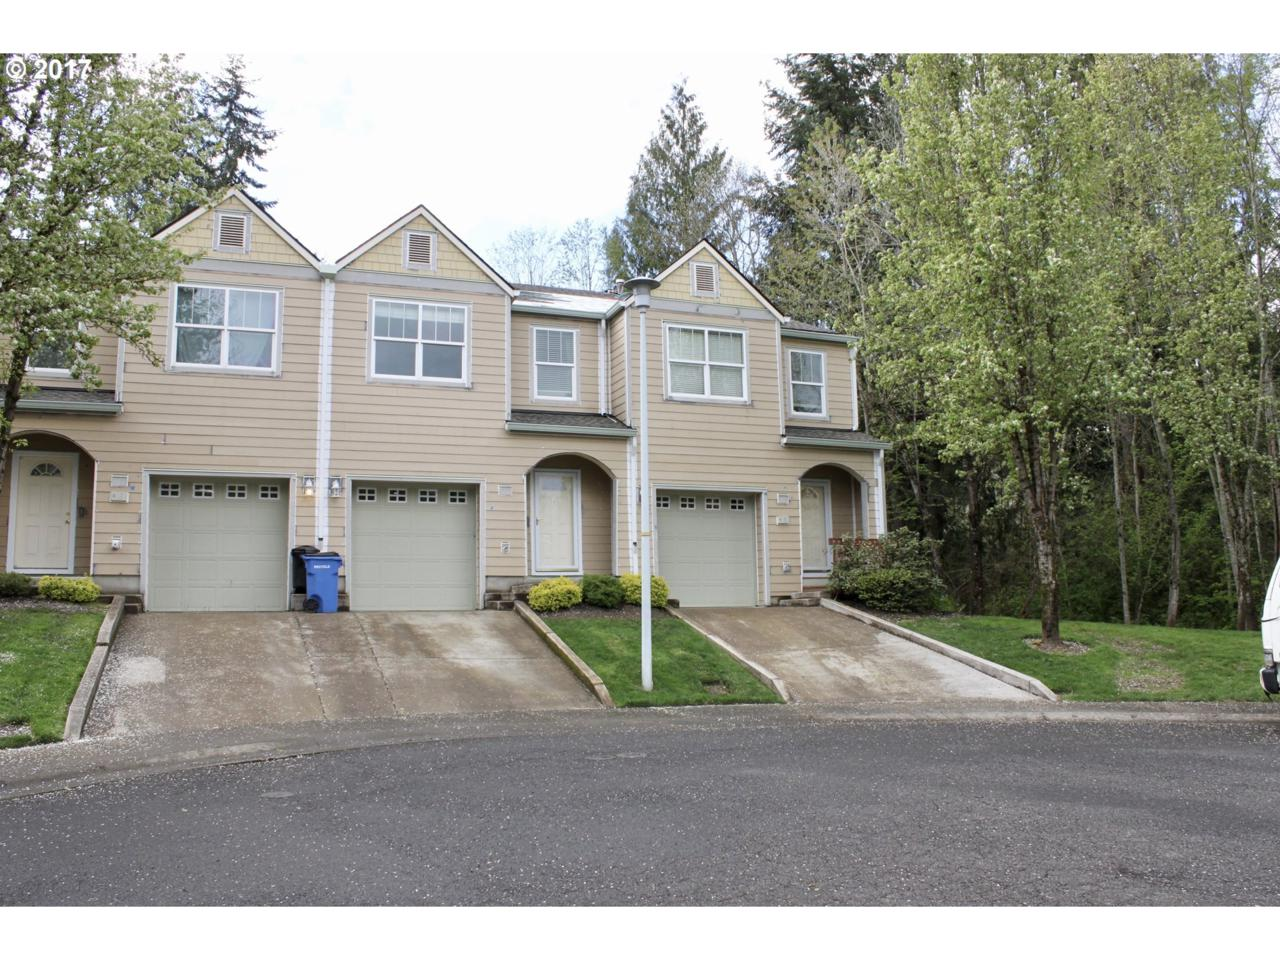 8100 NE 104TH Cir #4, Vancouver, WA 98662 (MLS #17634168) :: Cano Real Estate